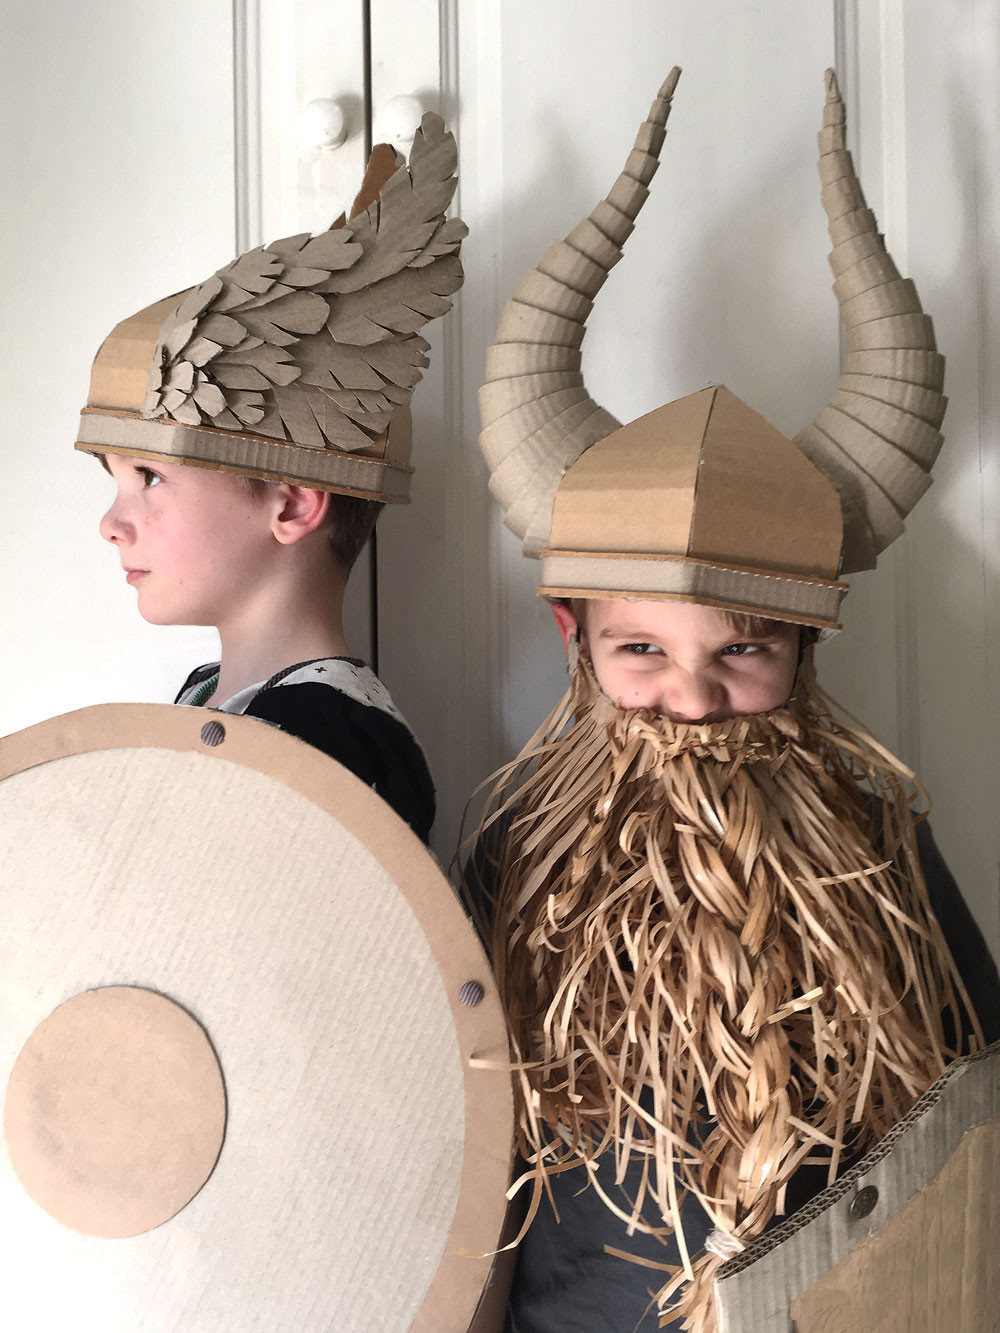 Cardboard Costume Viking Helmet Templates with wings and horns